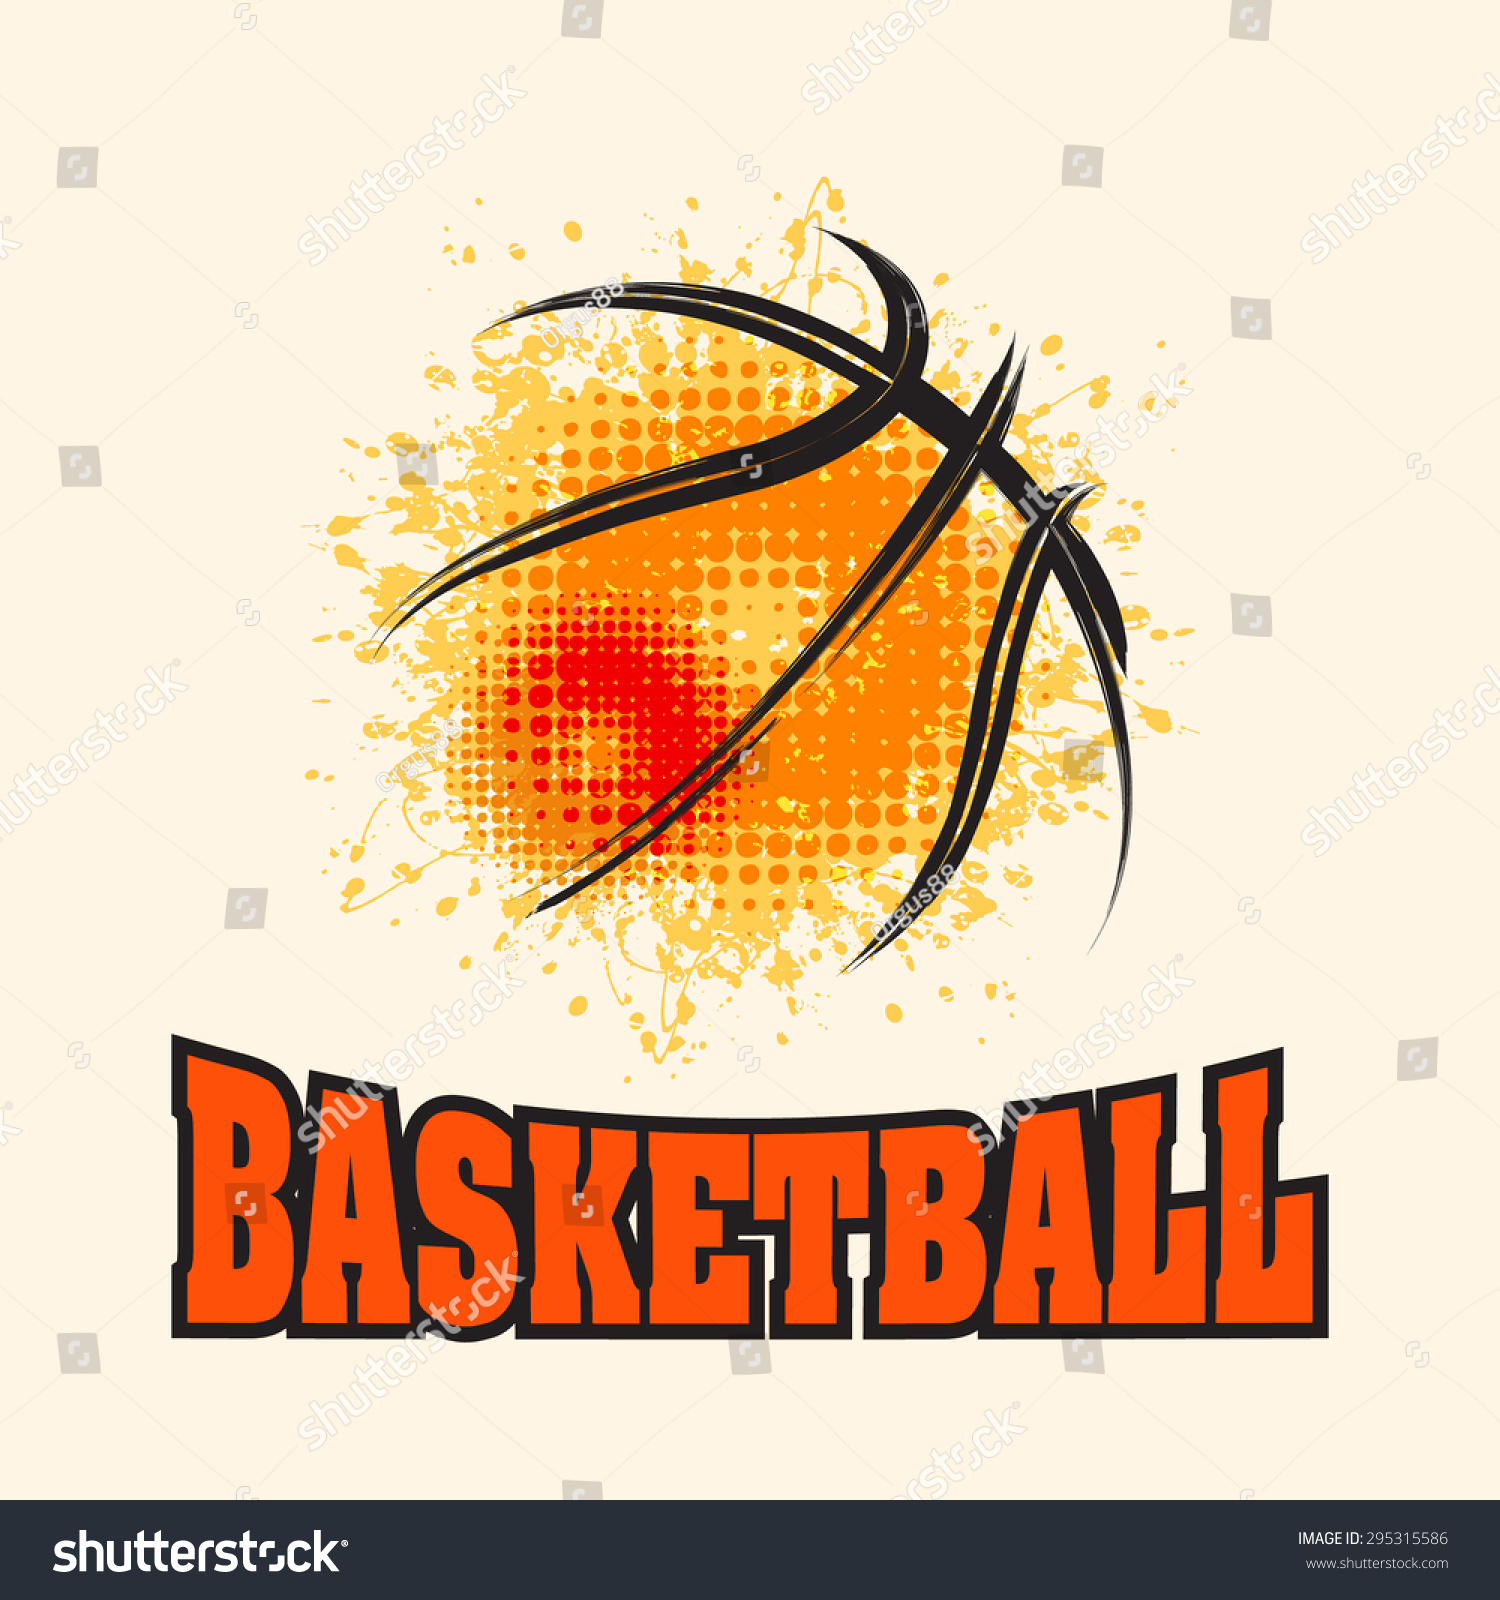 T shirt poster design - Vector Grunge Basketball T Shirt Poster Banner Backdrops Design